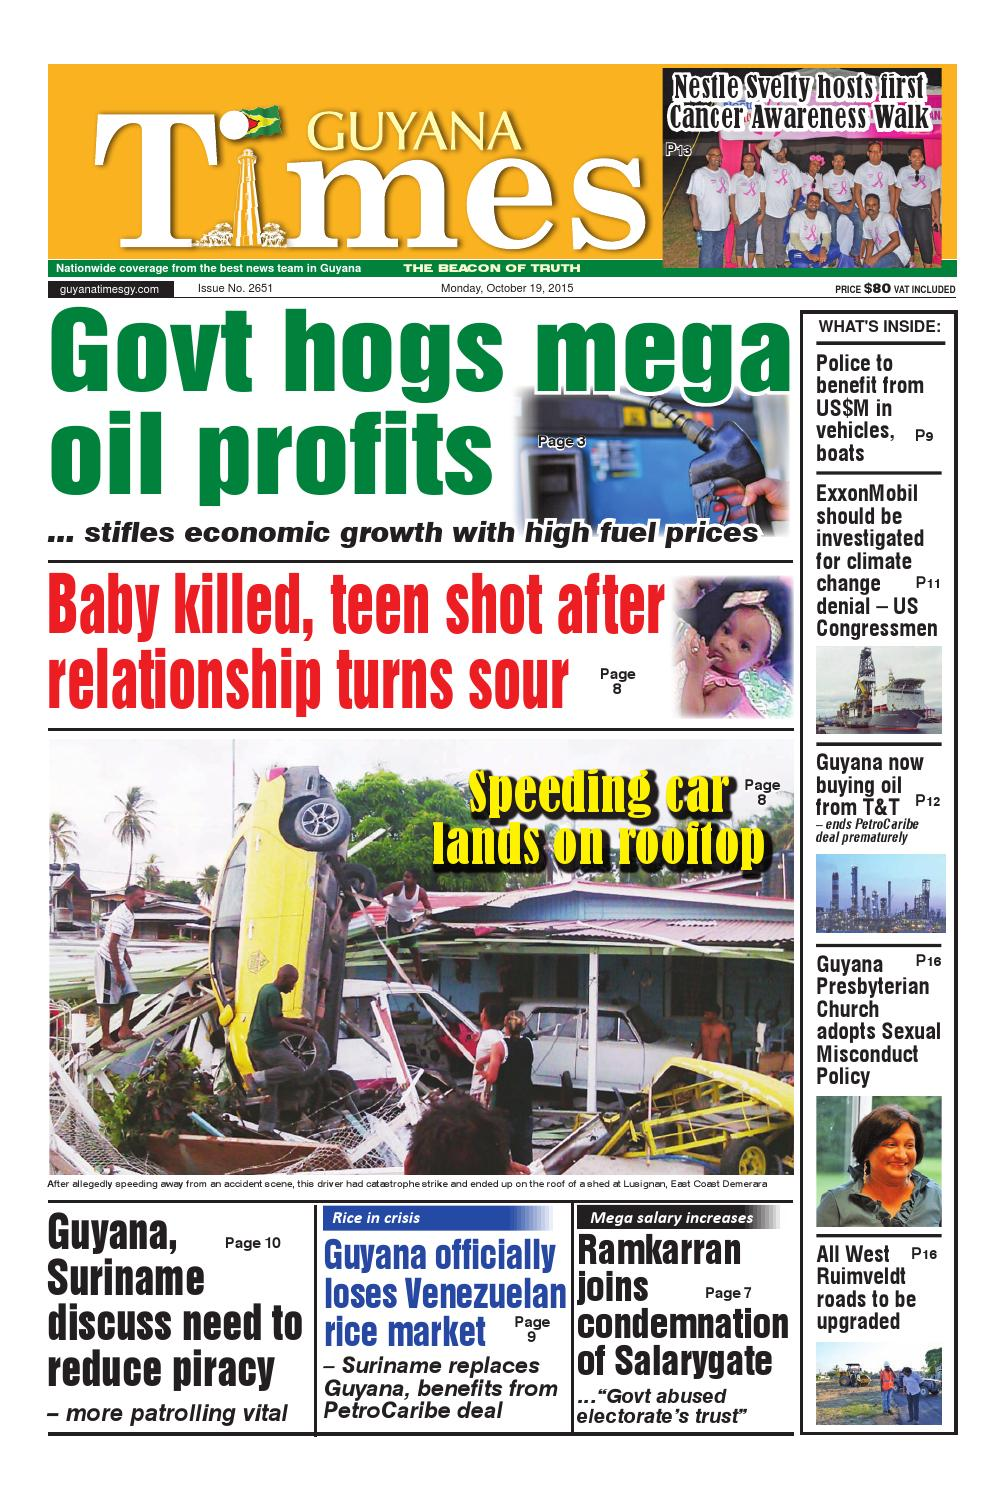 Guyana Times Daily - October 19, 2015 by Gytimes - issuu